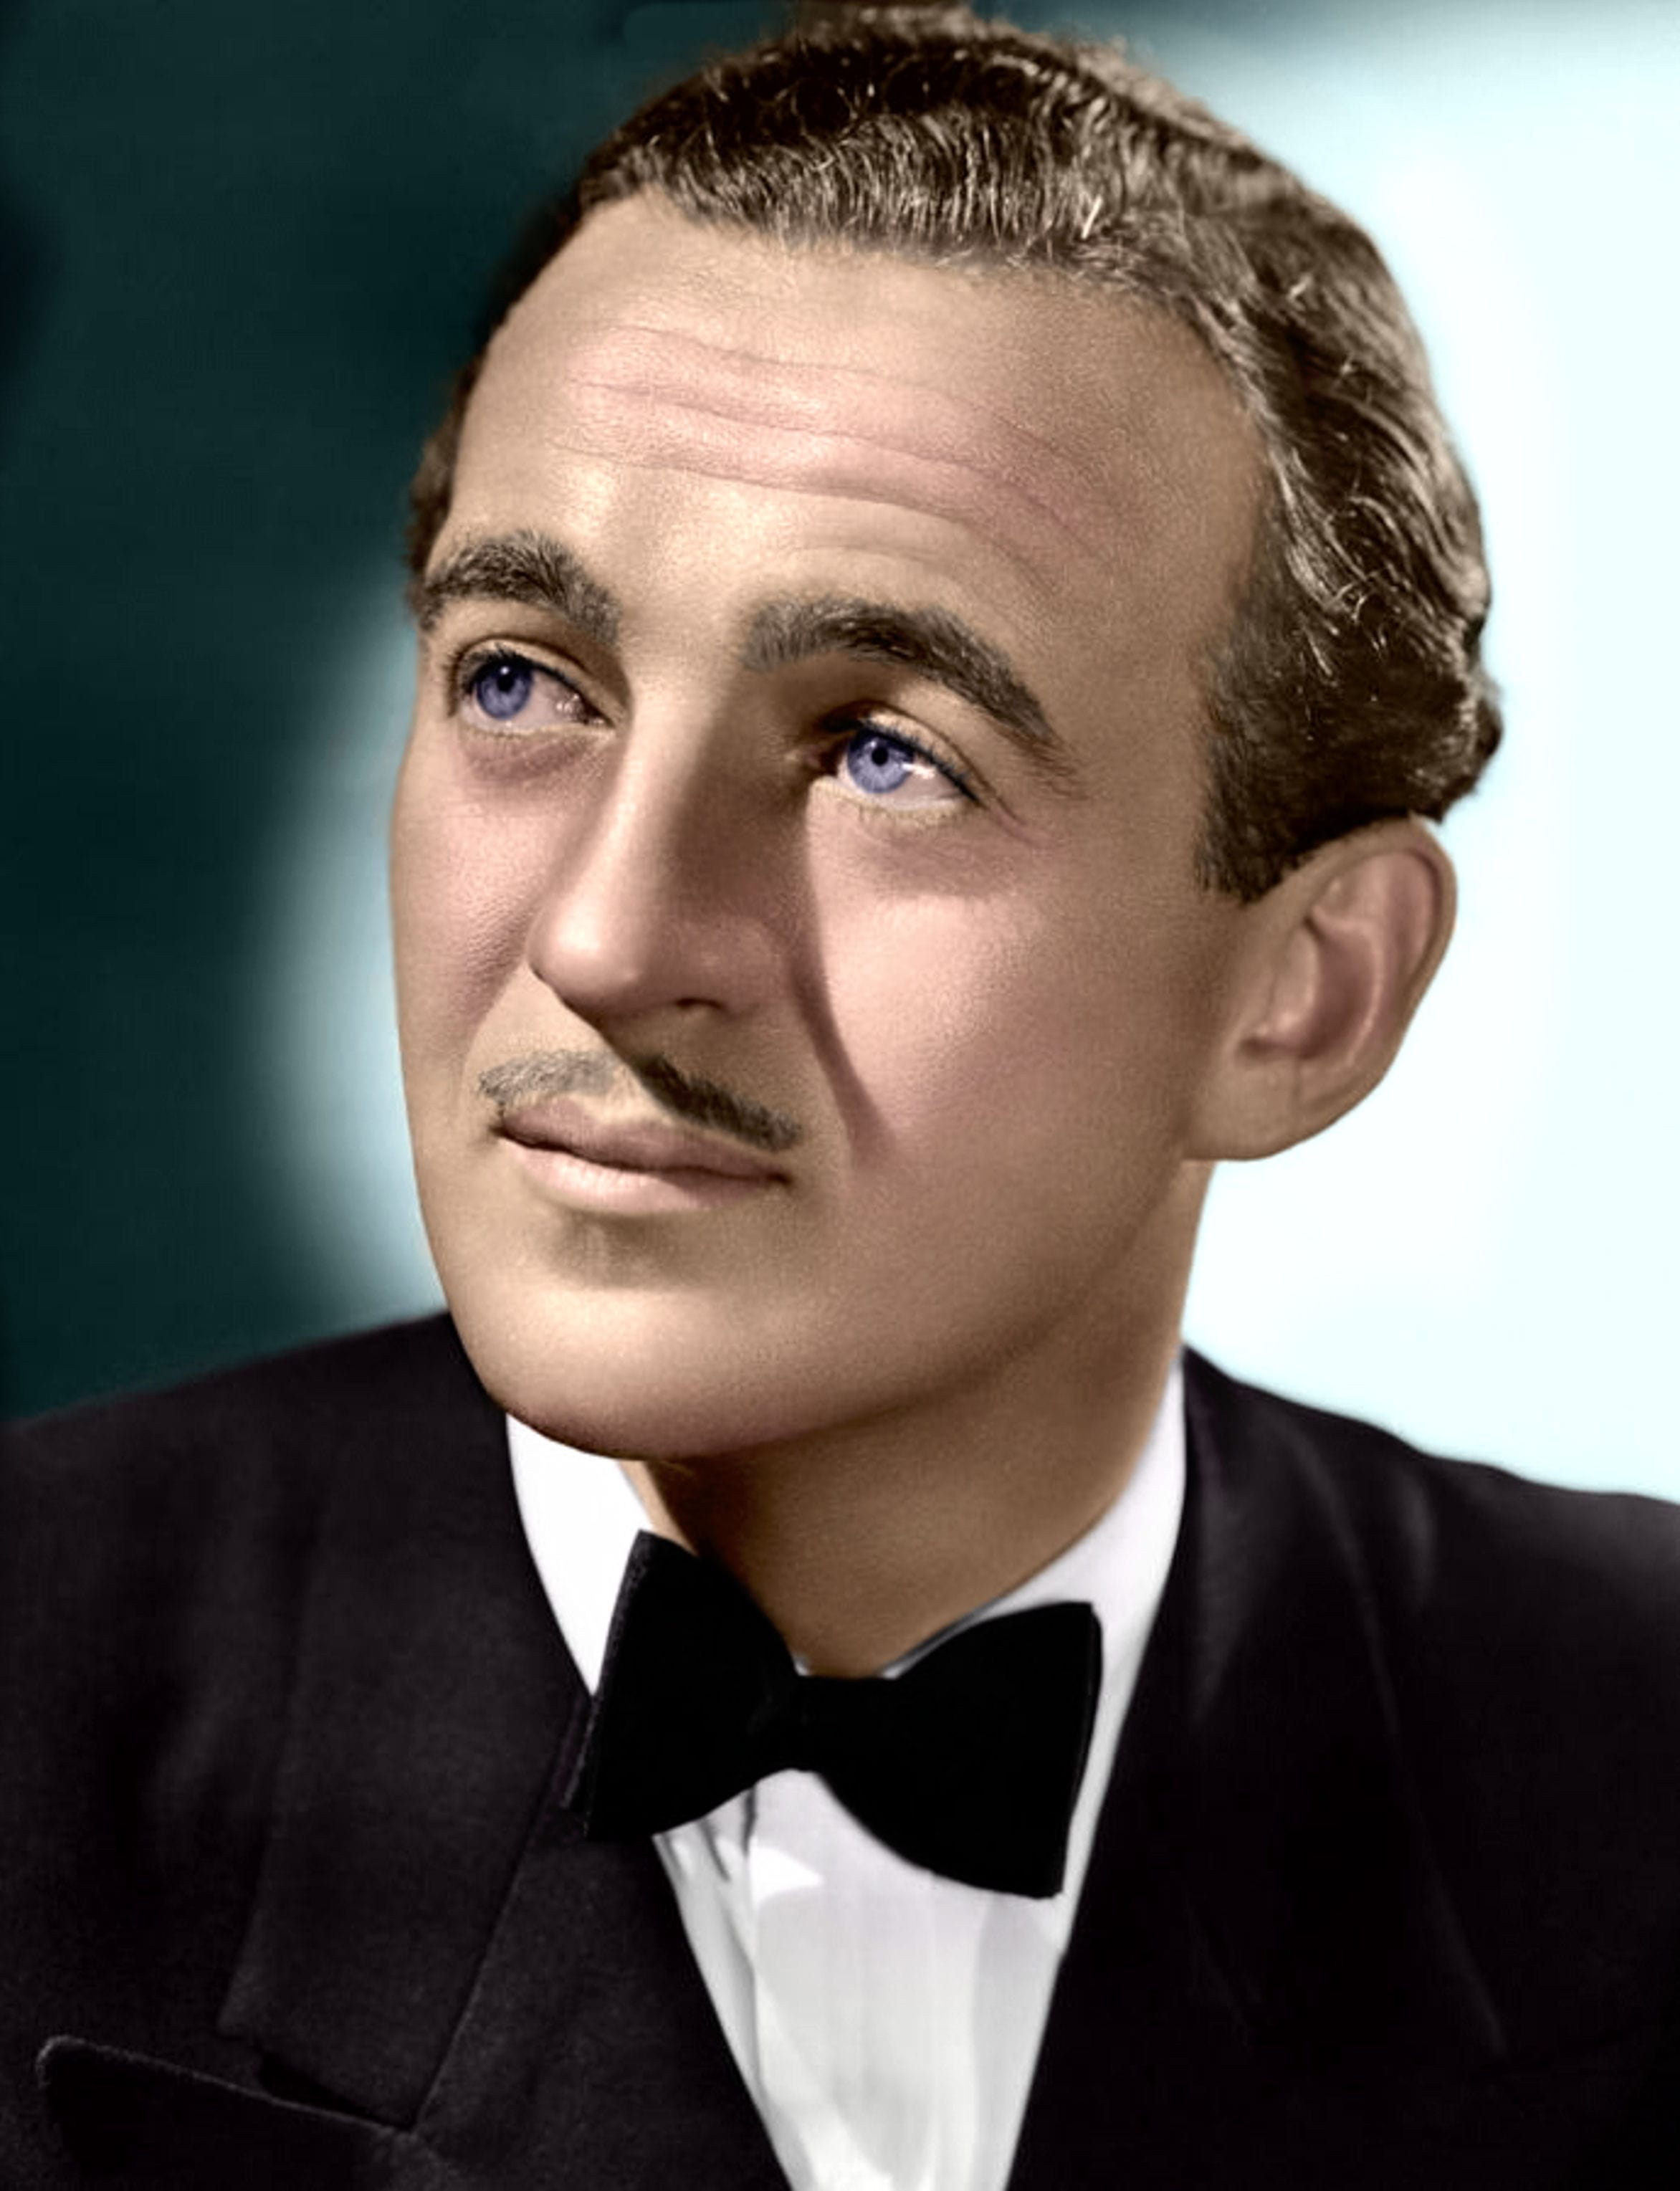 David Niven Wallpapers hd